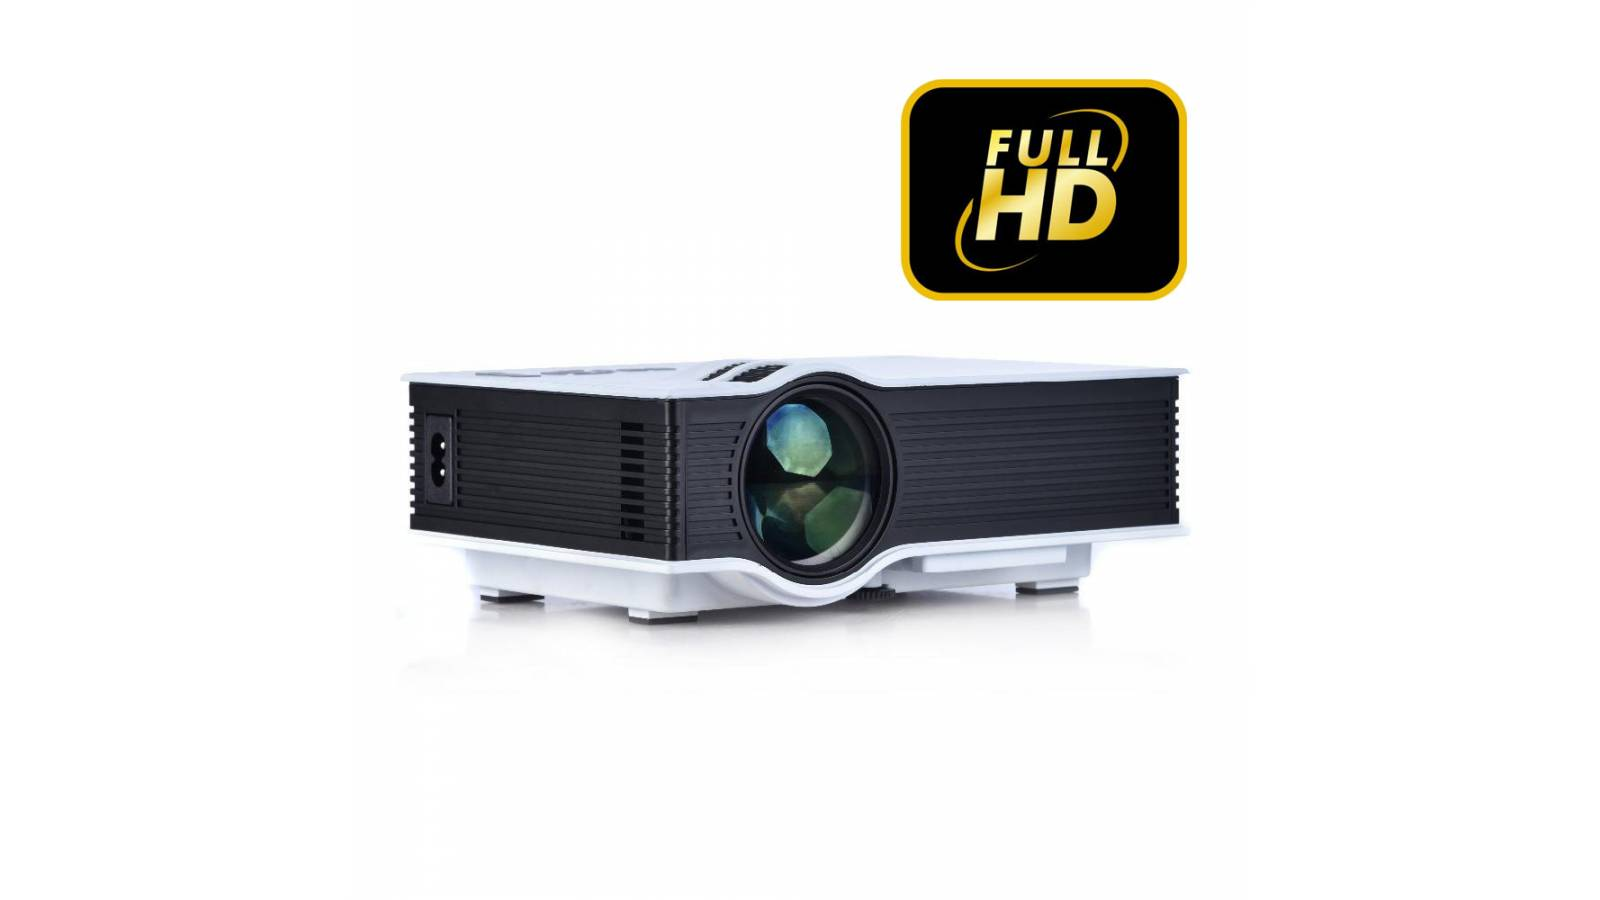 Mini Proyector Led Full Hd Portátil G40+ 1080P VGA AV HDMI 1200 ANSI